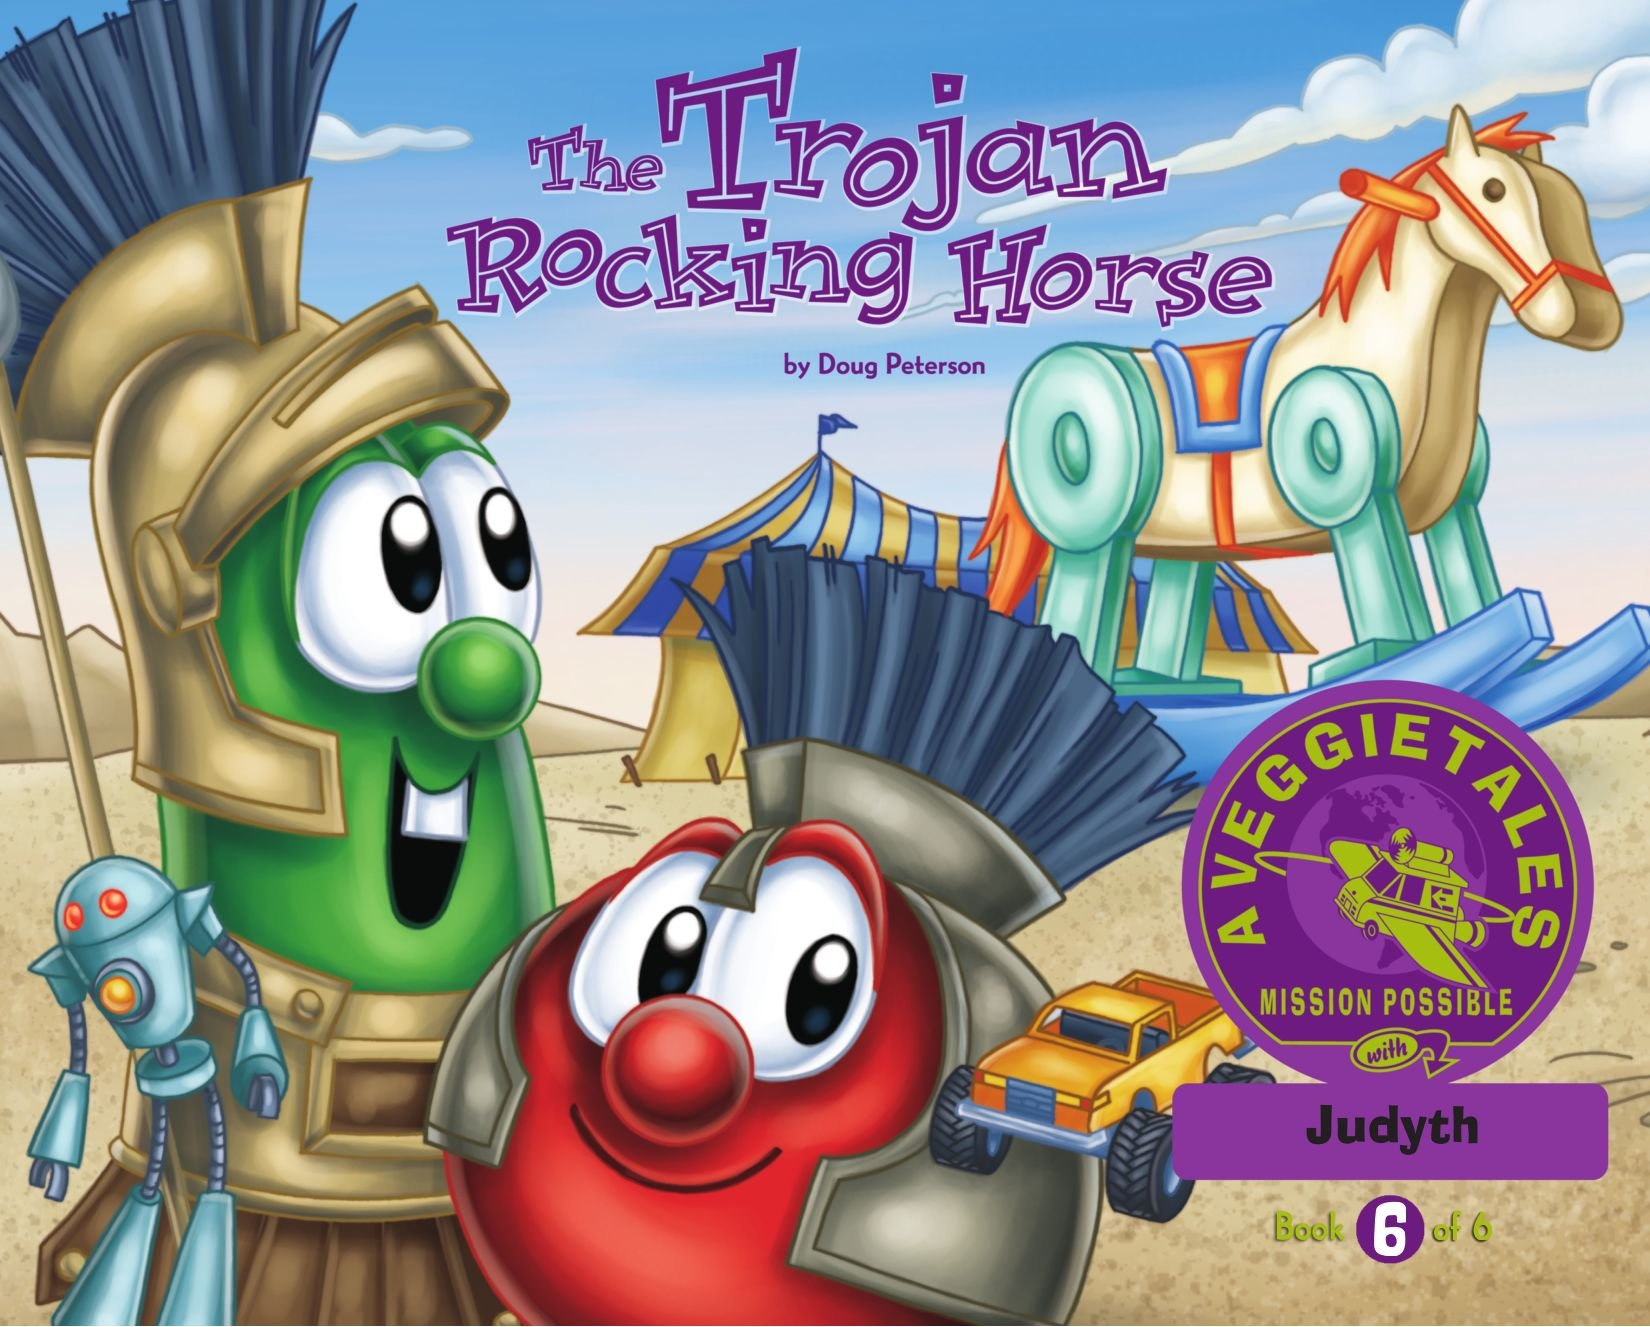 The Trojan Rocking Horse - VeggieTales Mission Possible Adventure Series #6: Personalized for Judyth (Girl) ebook